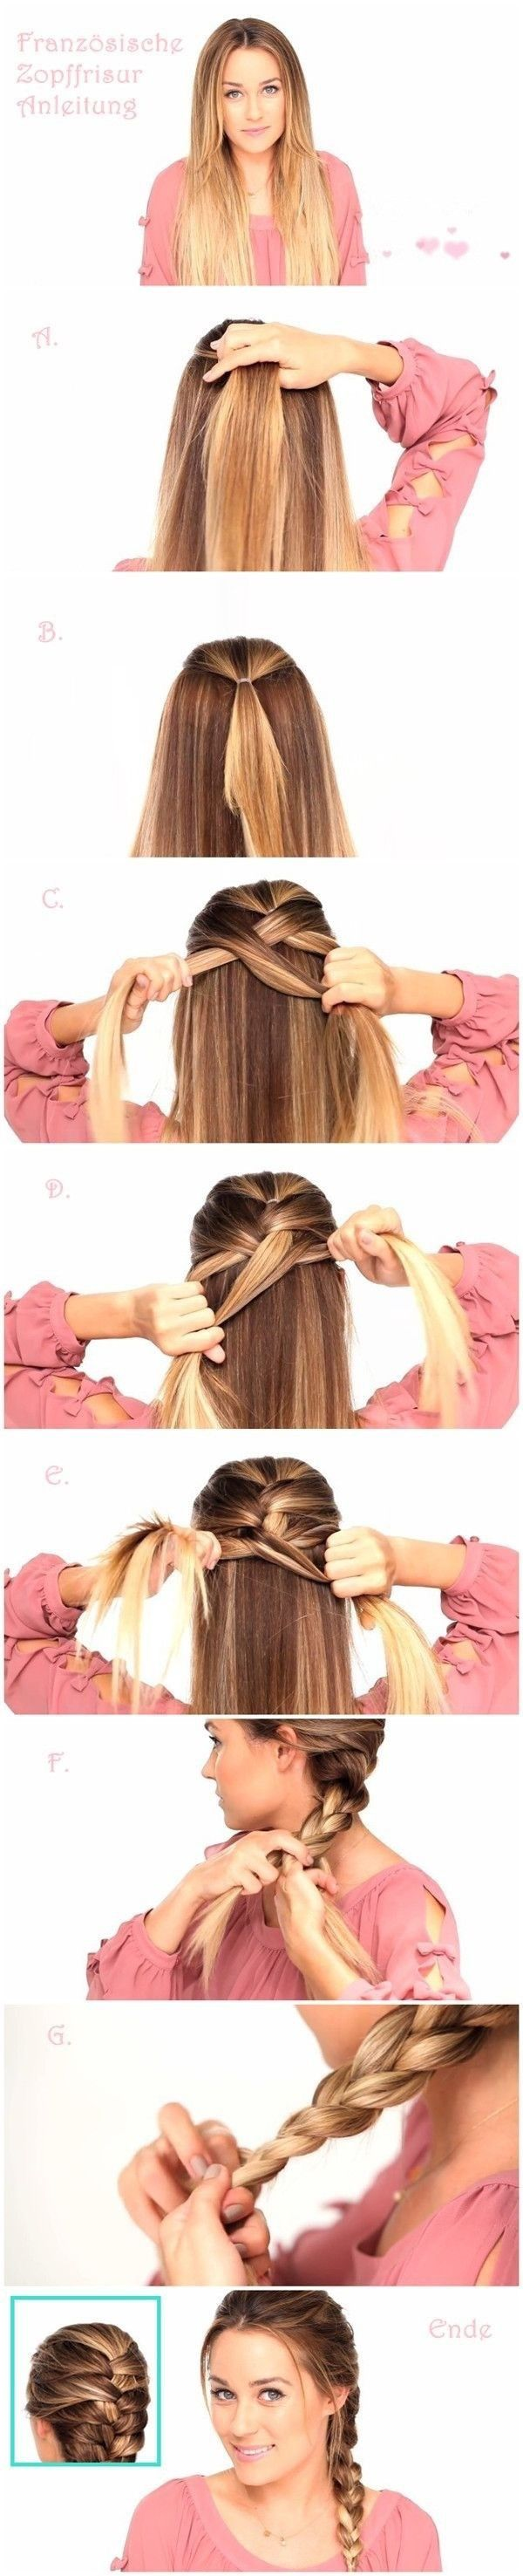 Yes please. Especially helpful for people like me who can't French braid their own or others hair:)